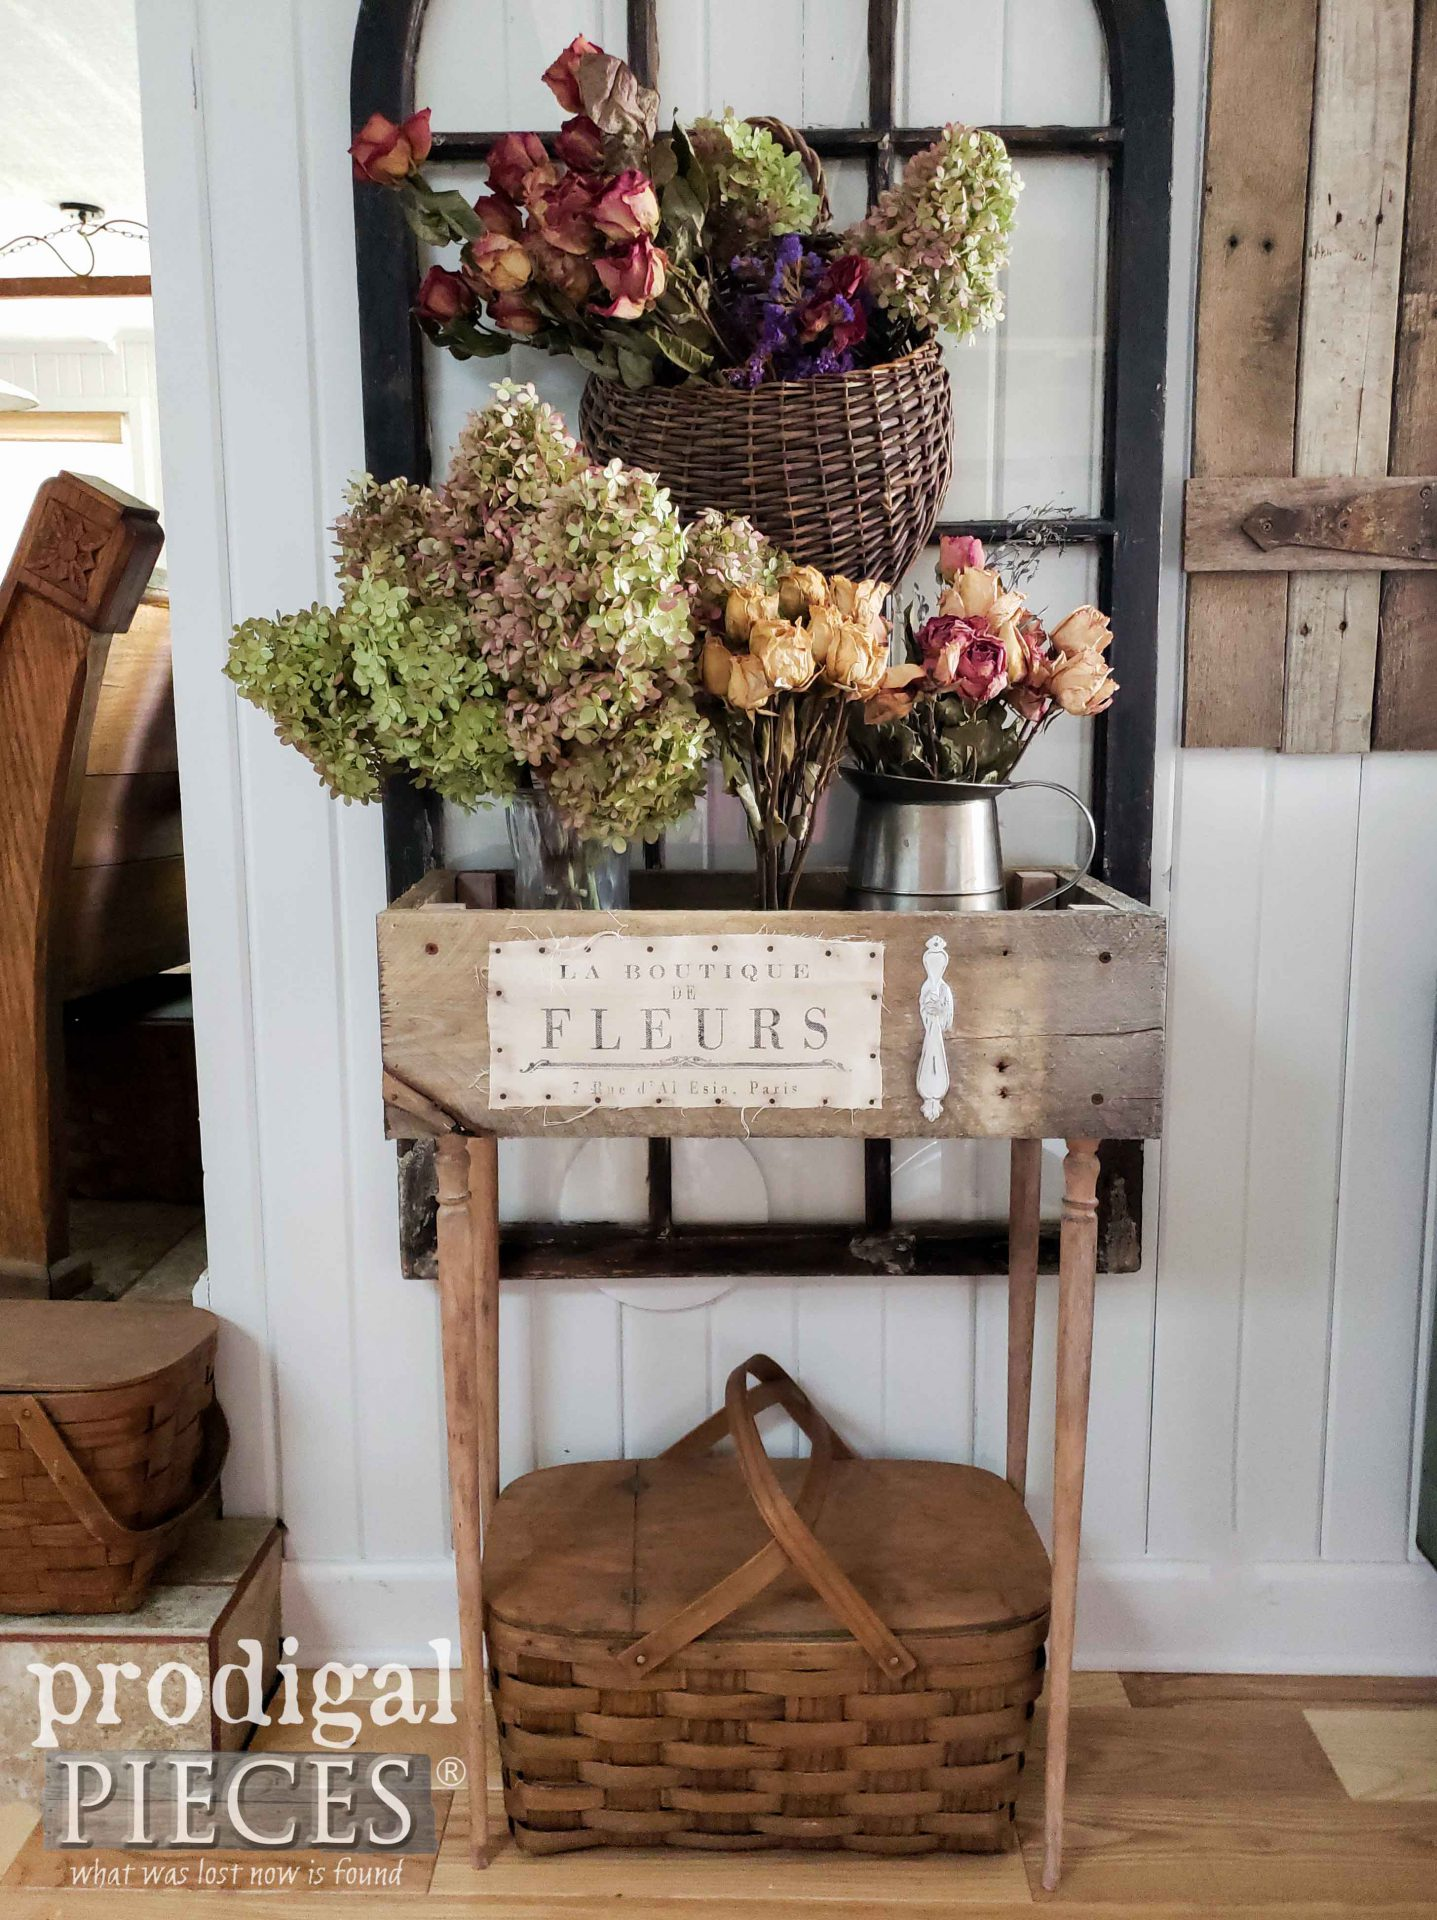 French Farmhouse Crate Table from Upcycled Pallet Farmhouse Decor by Larissa of Prodigal Pieces | prodigalpieces.com #prodigalpieces #farmhouse #diy #home #homedecor